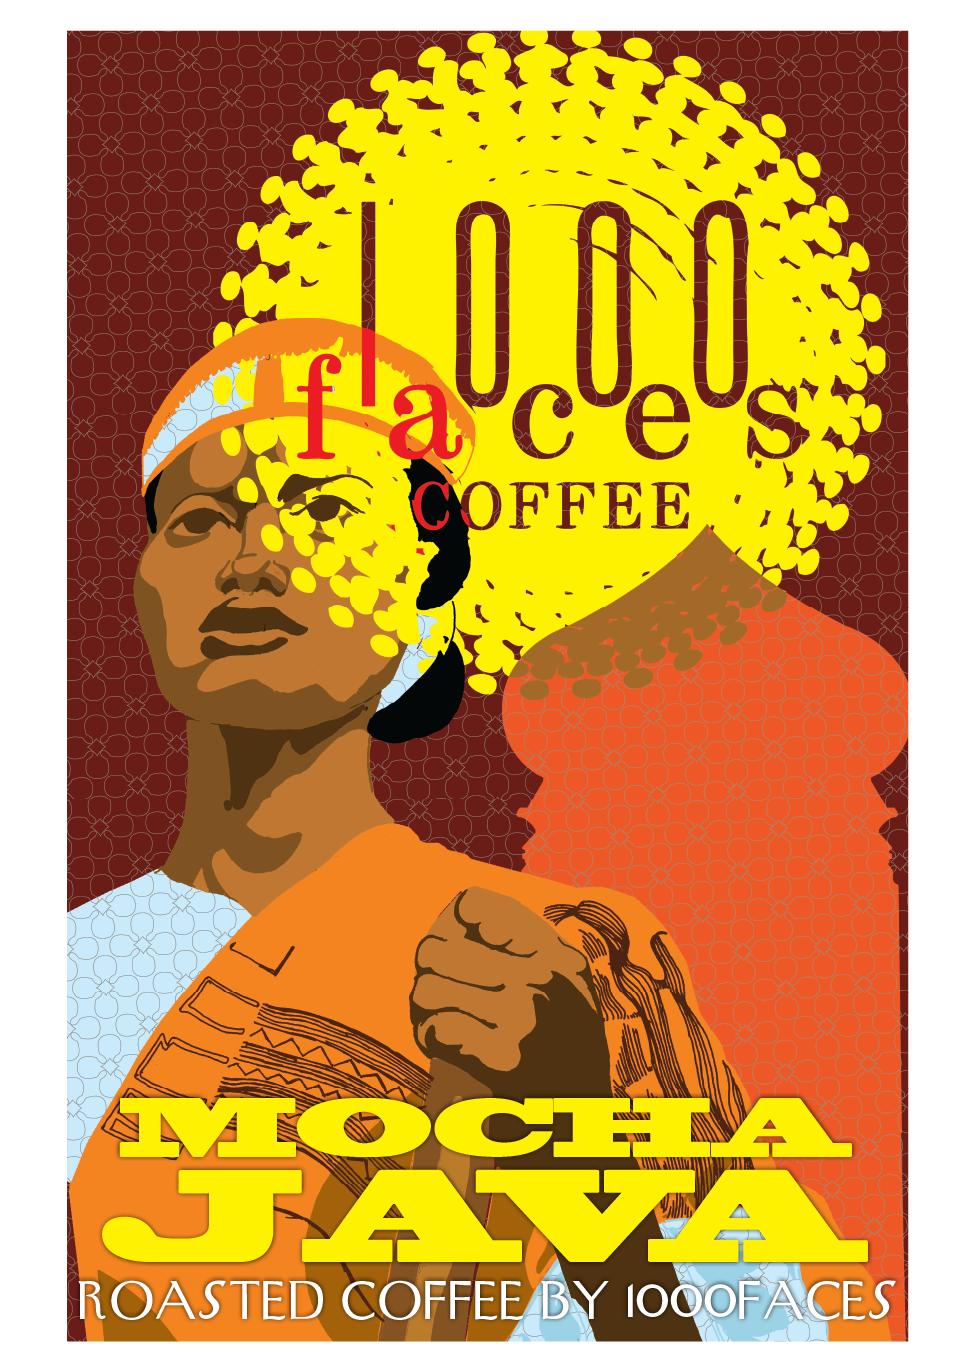 1000-f-posters-20.png